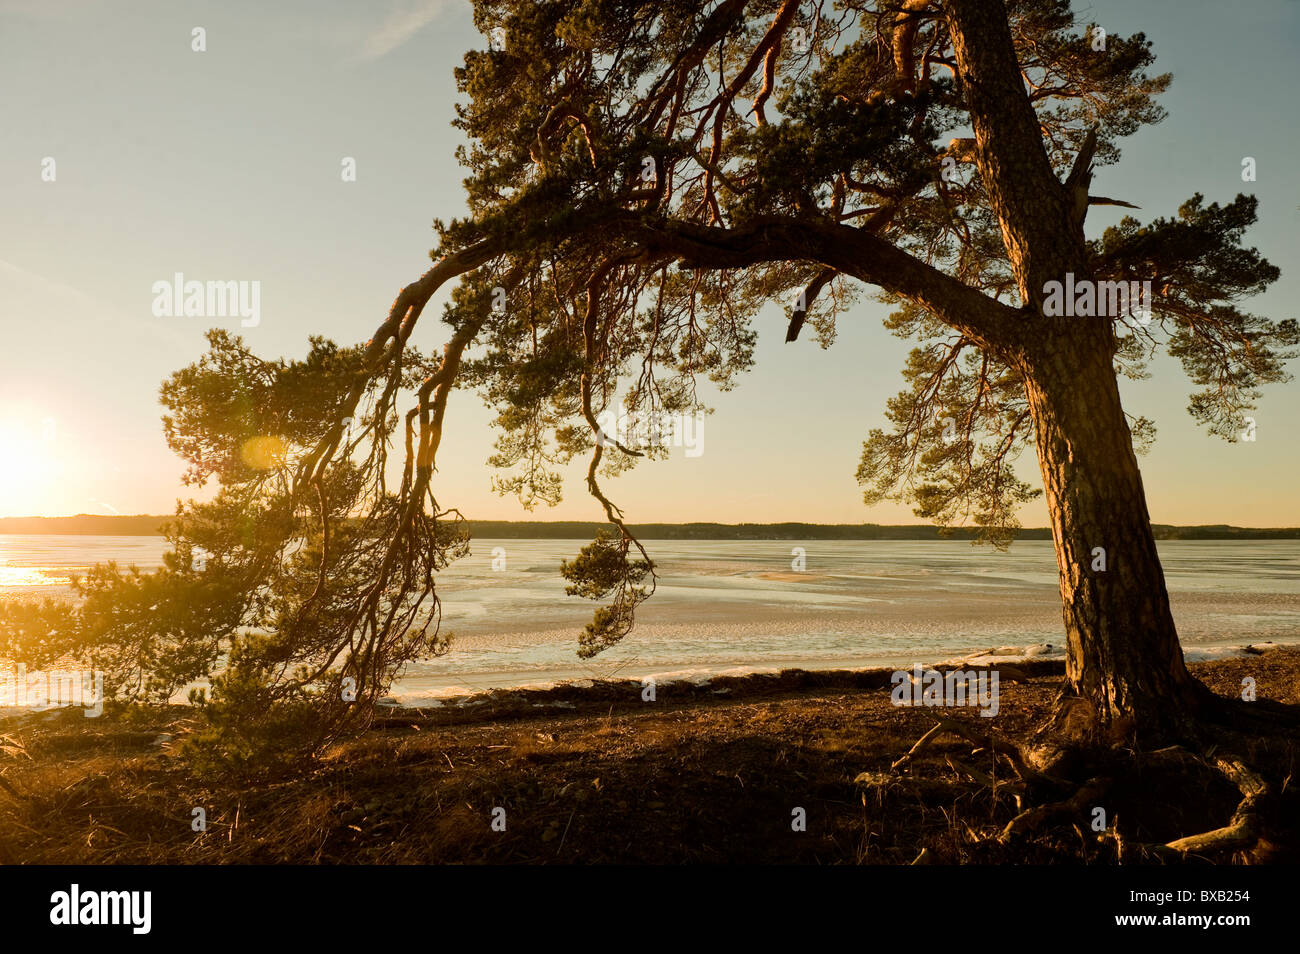 View of tree beside lake at dusk - Stock Image